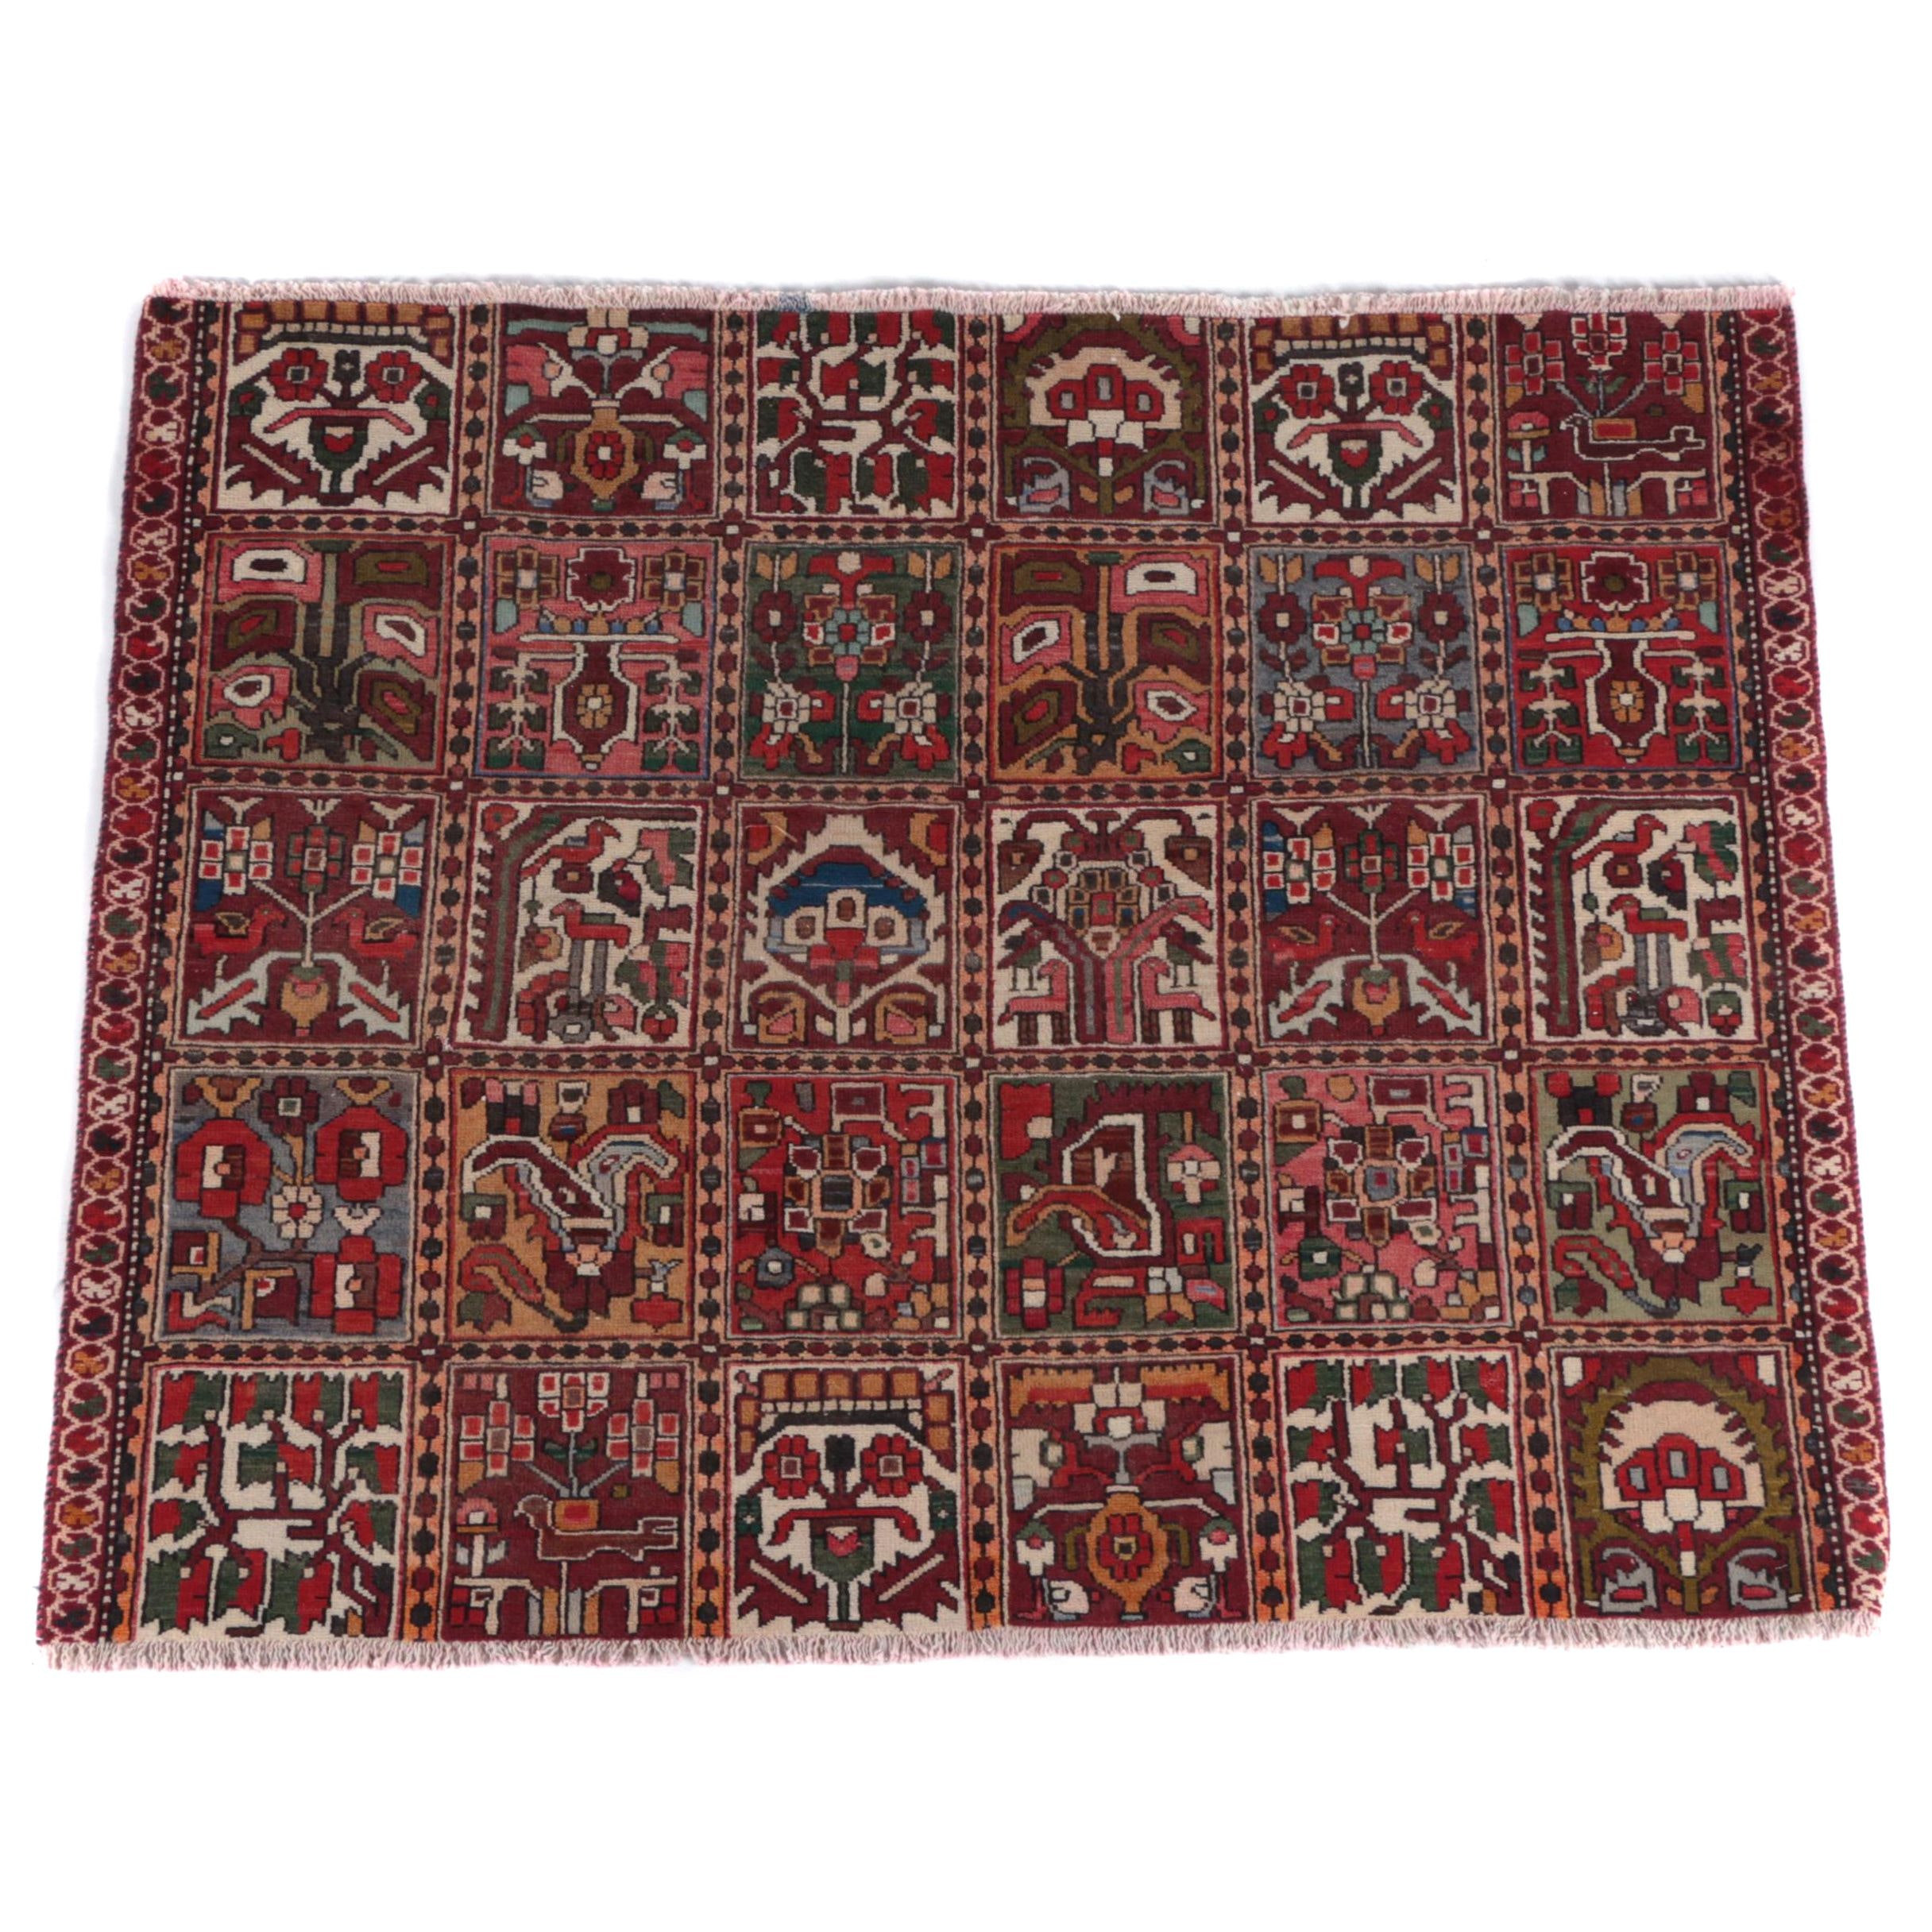 Hand-Knotted Persian Chahar Mahal Rug Remnant